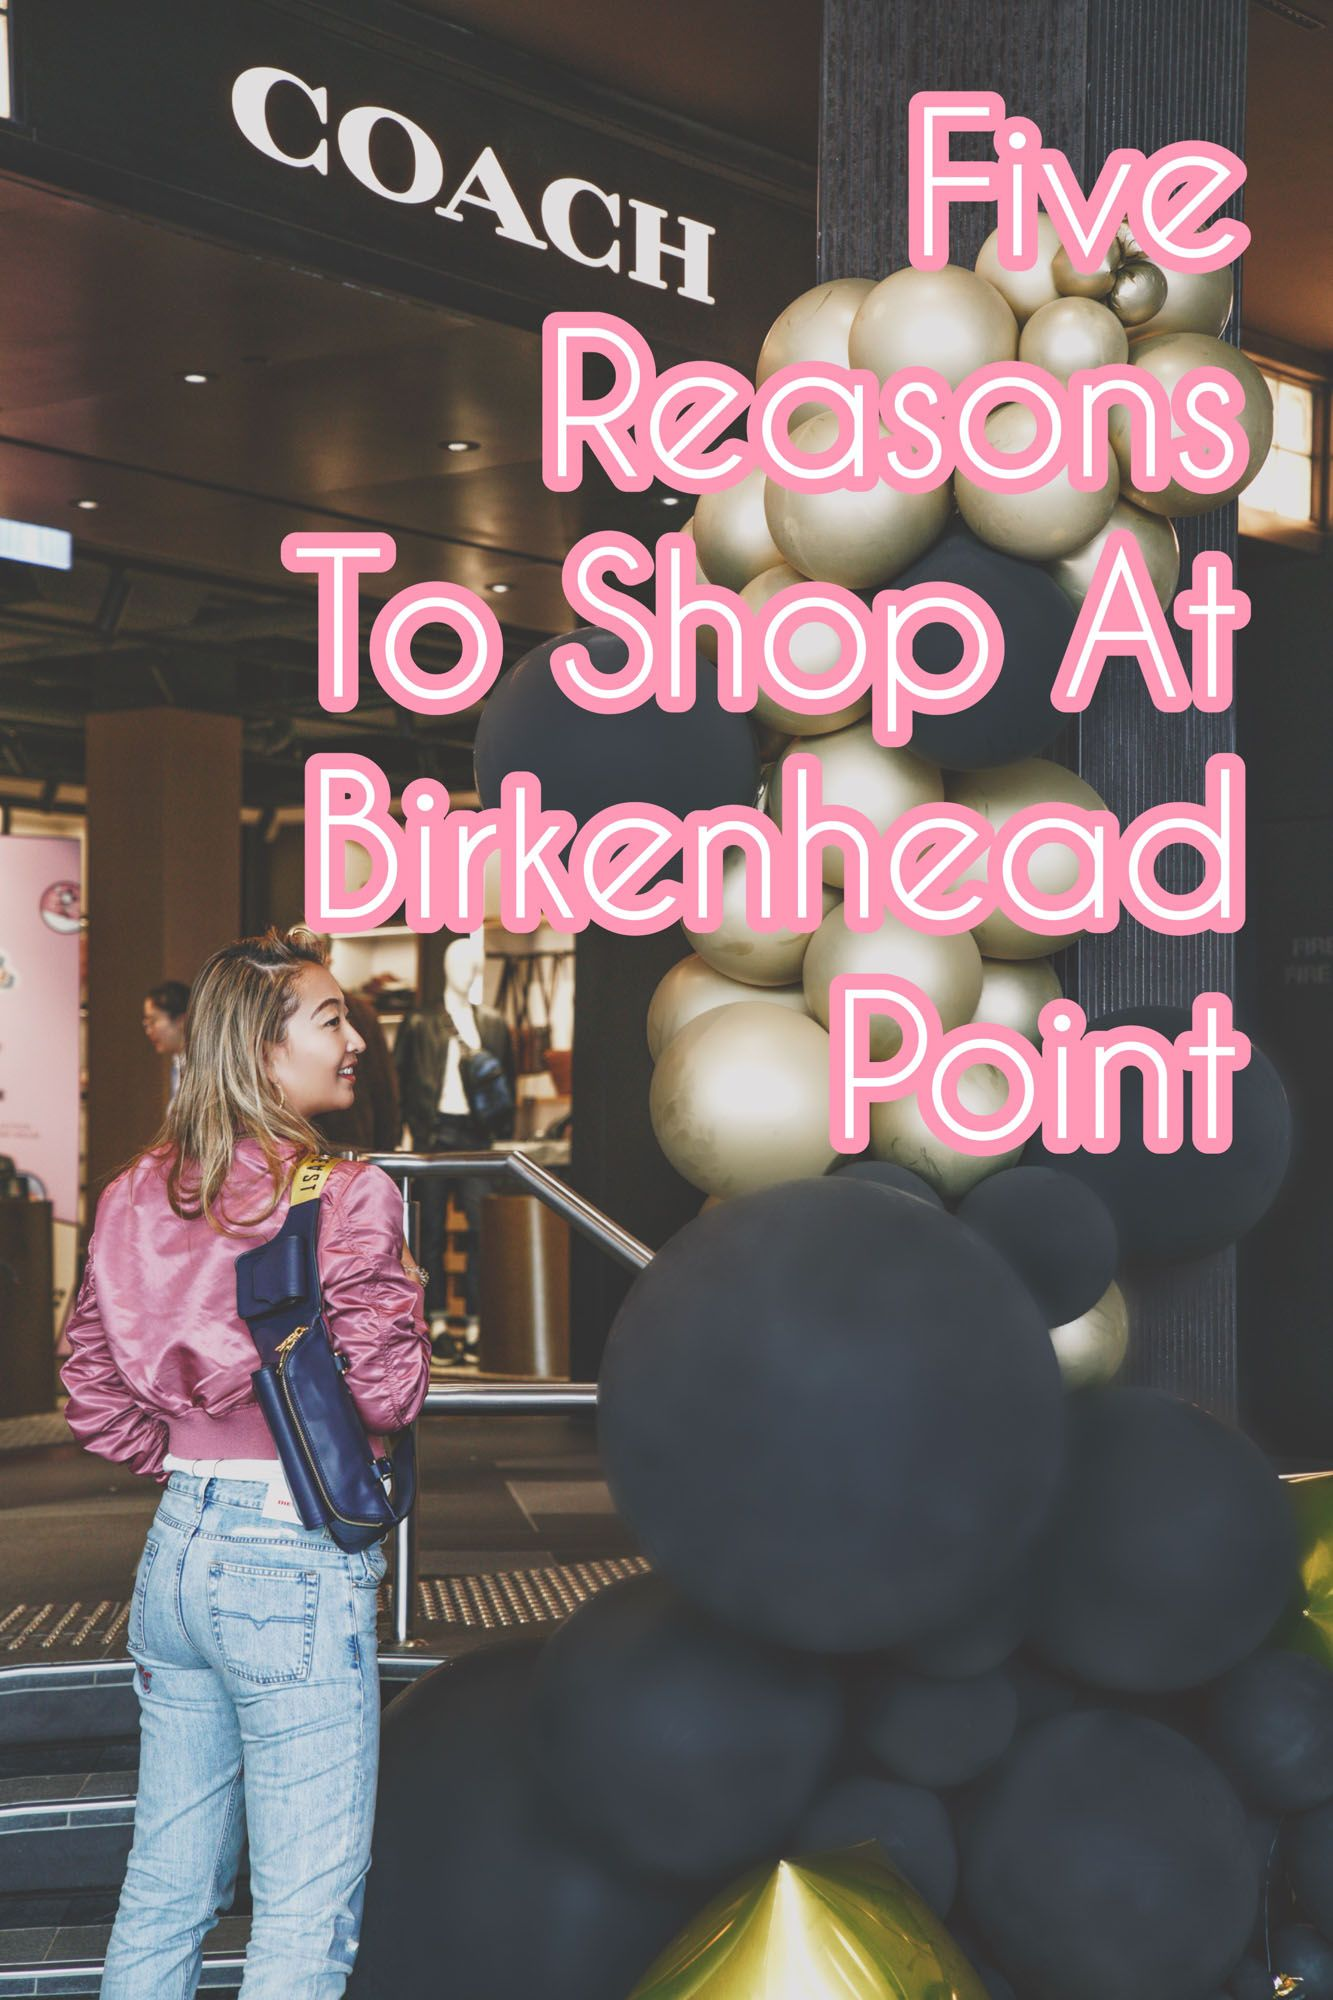 Five Reasons to Shop at Birkenhead Point